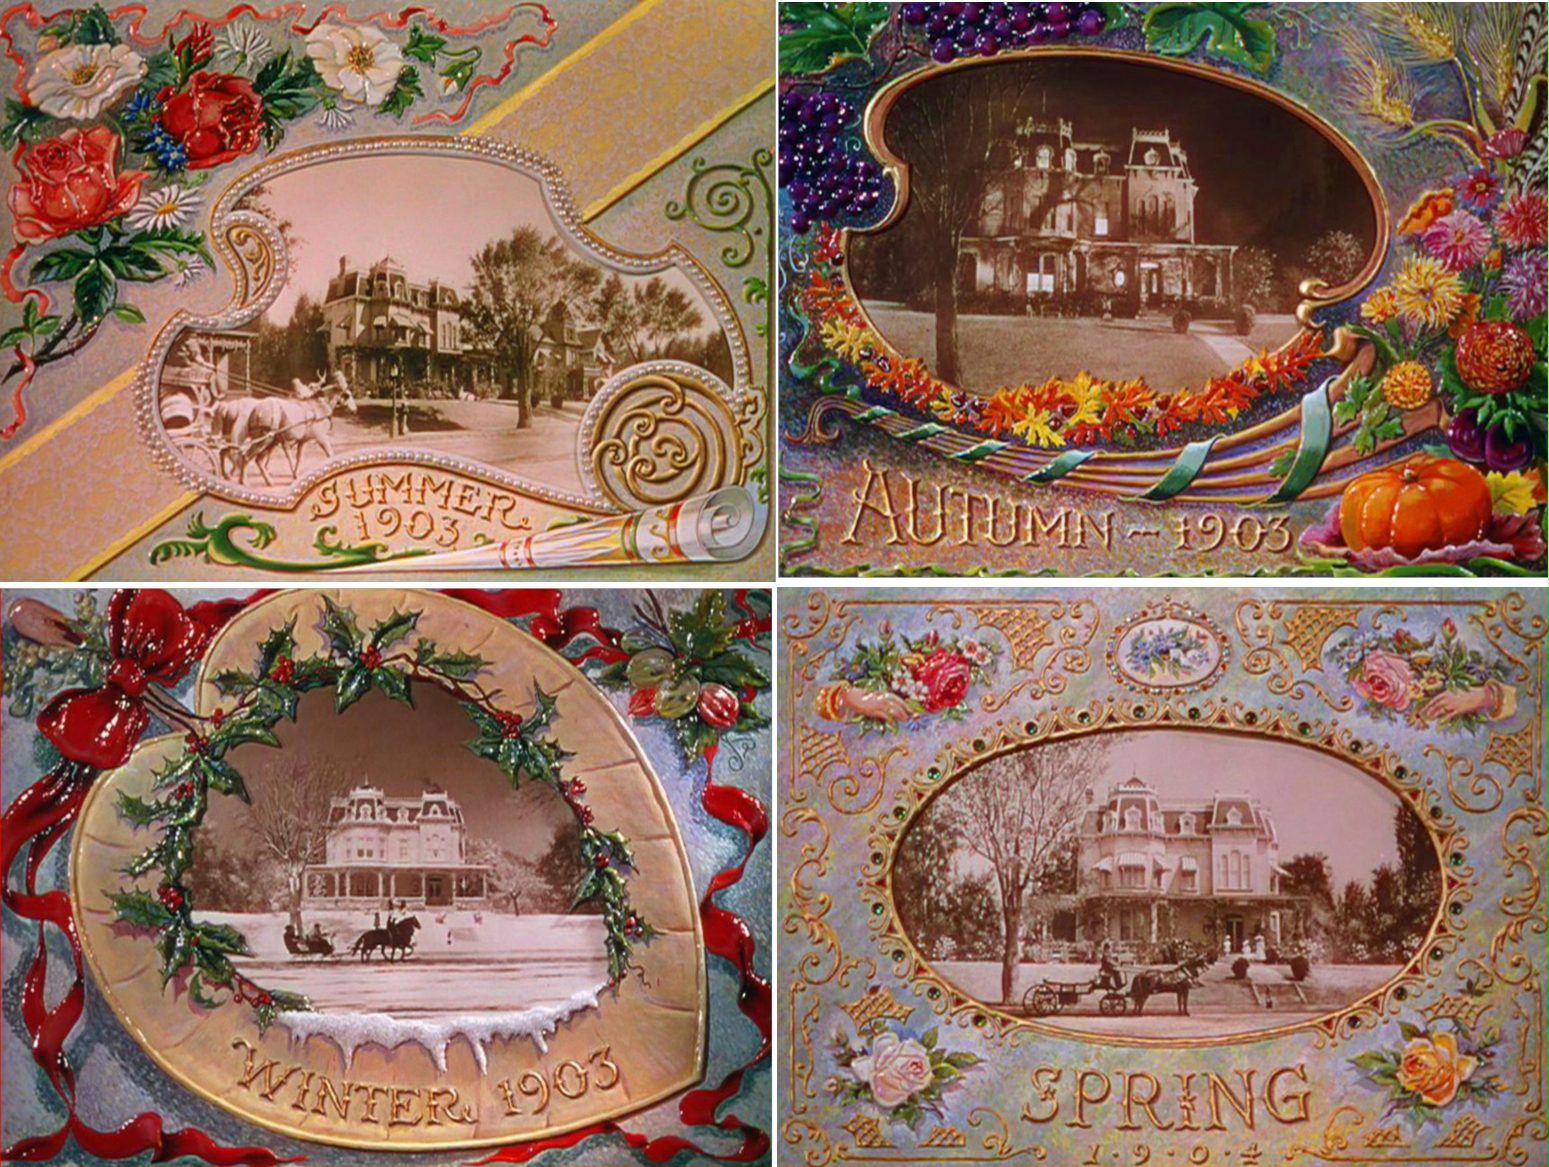 Image from Meet Me in St. Louis: Summer 1903, Autumn 1903, Winter 1903, Spring 1904. Source: https://lecinemadreams.blogspot.com/2015/12/meet-me-in-st-louis-1944.html